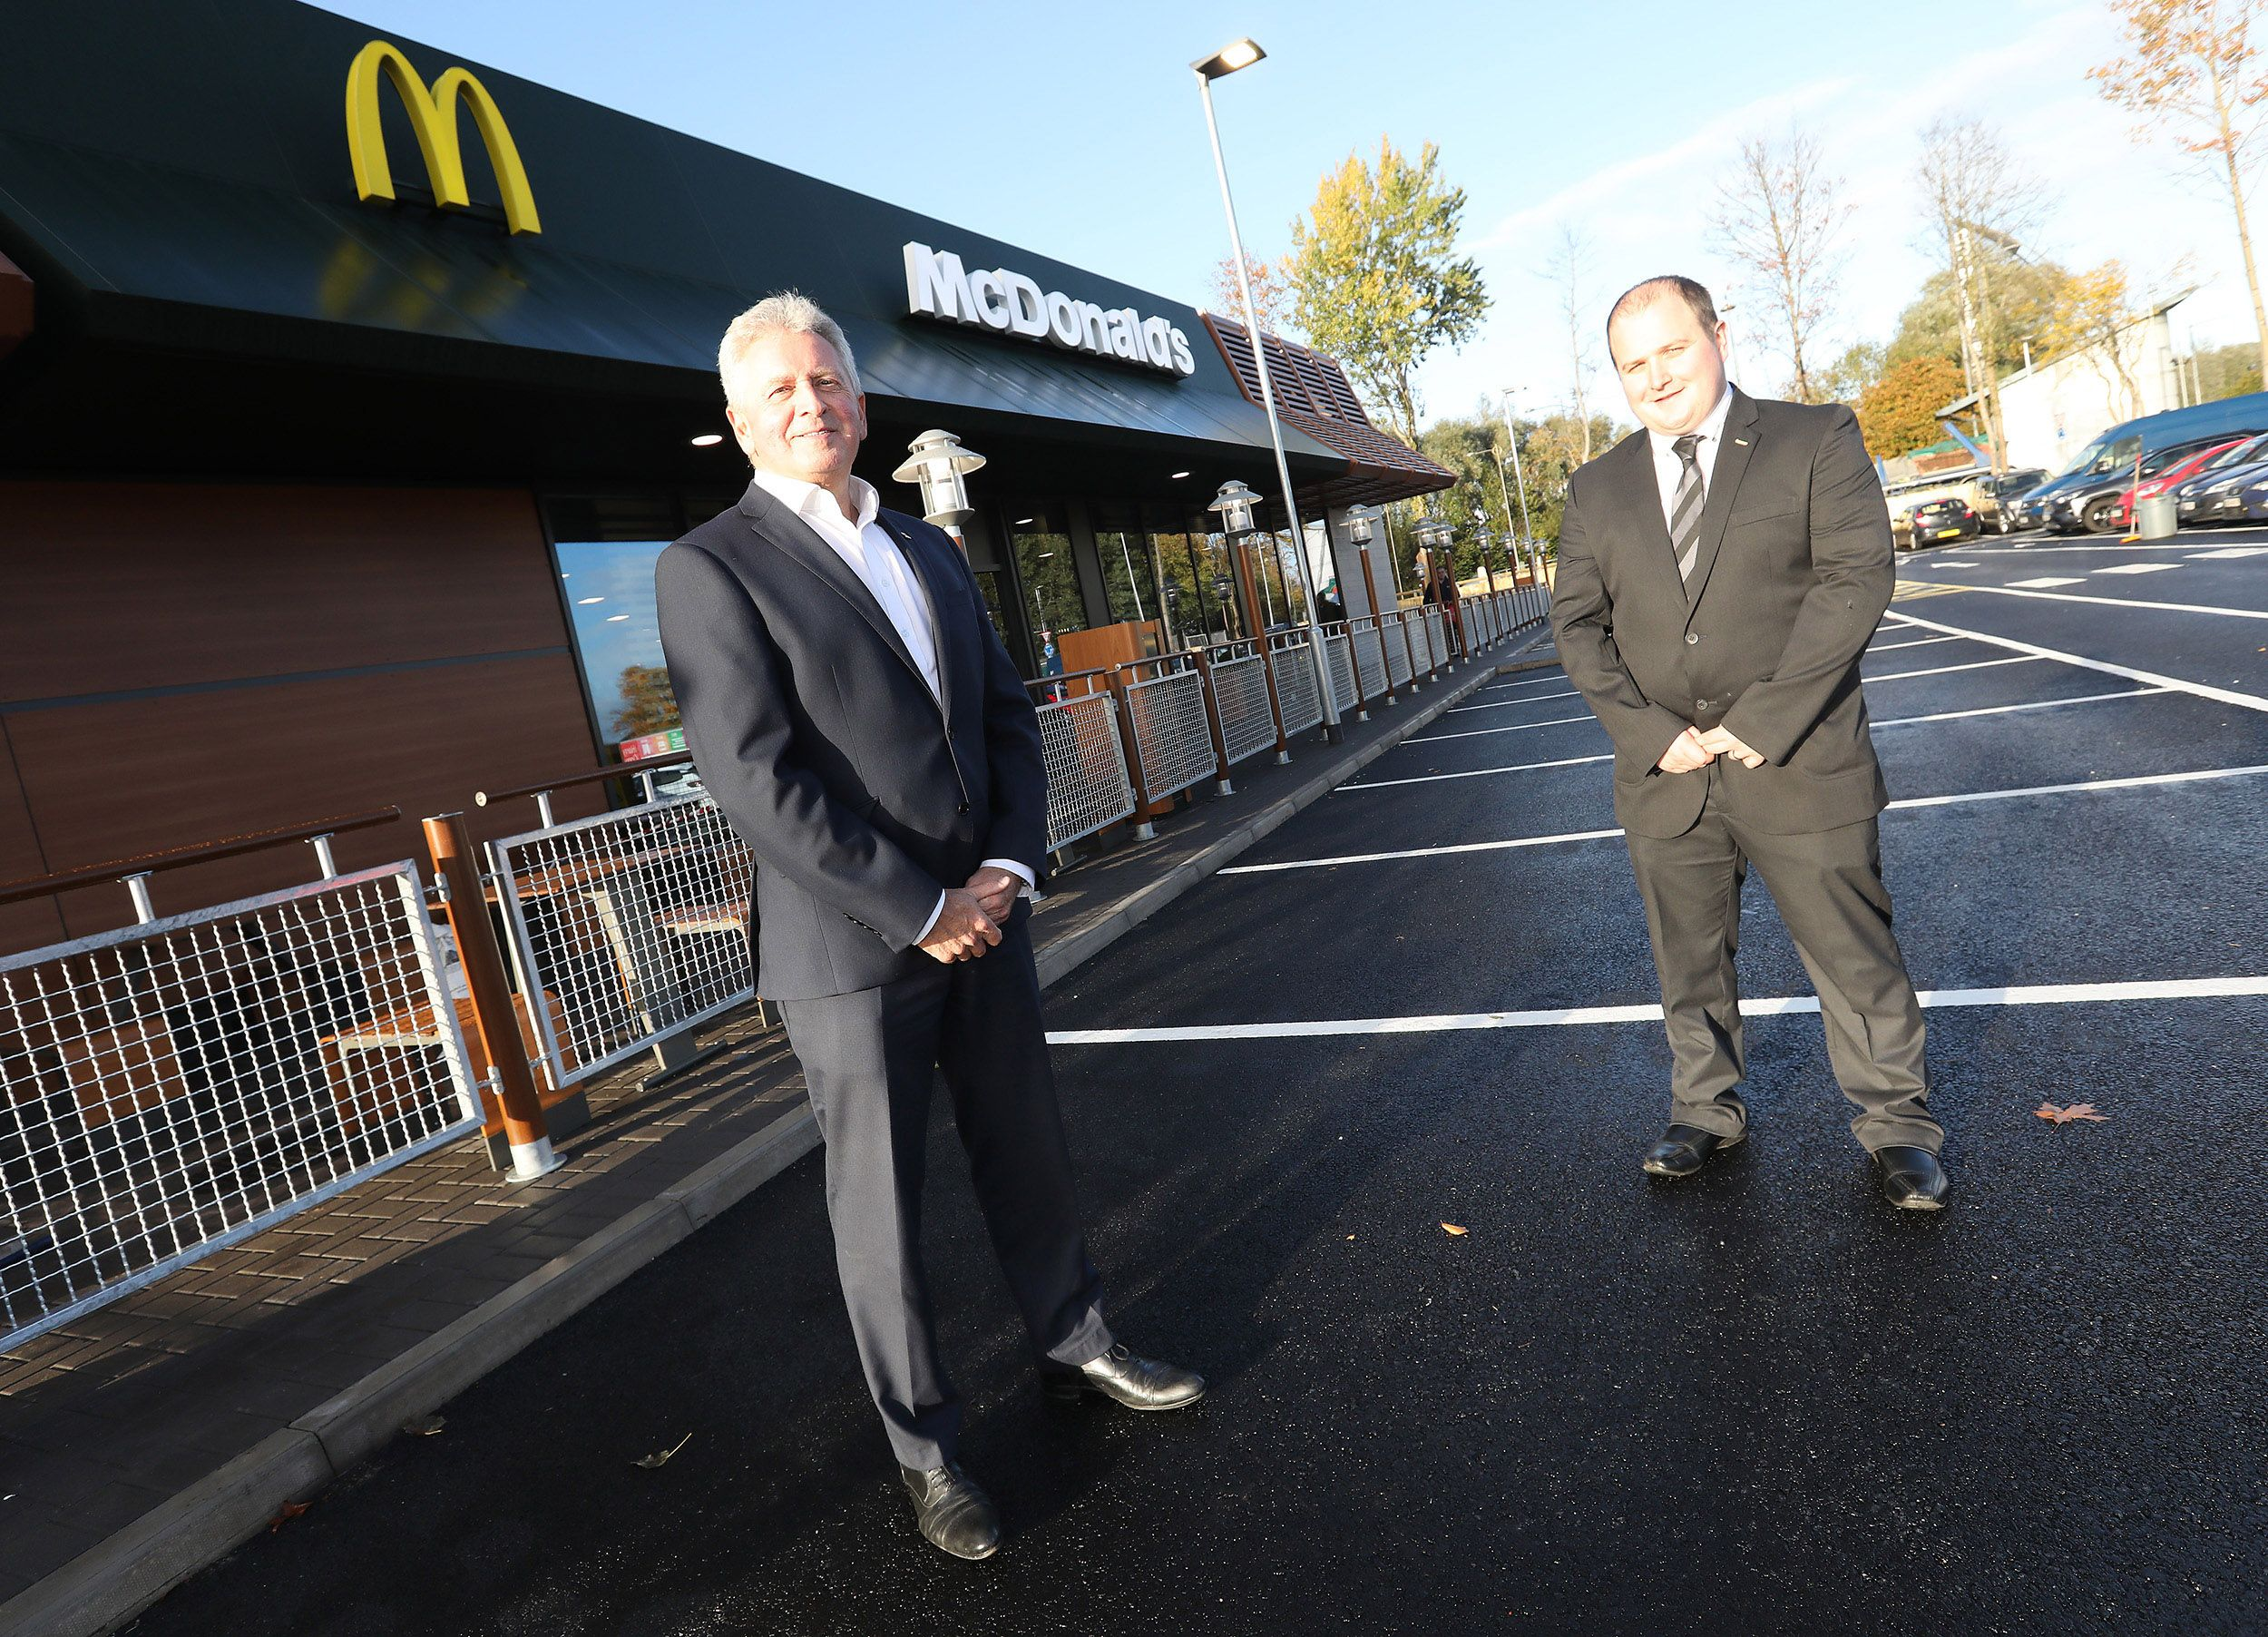 OPEN FOR BUSINESS: McDonald's Colin franchisee John McCollum and Business Manager Gavin Doran